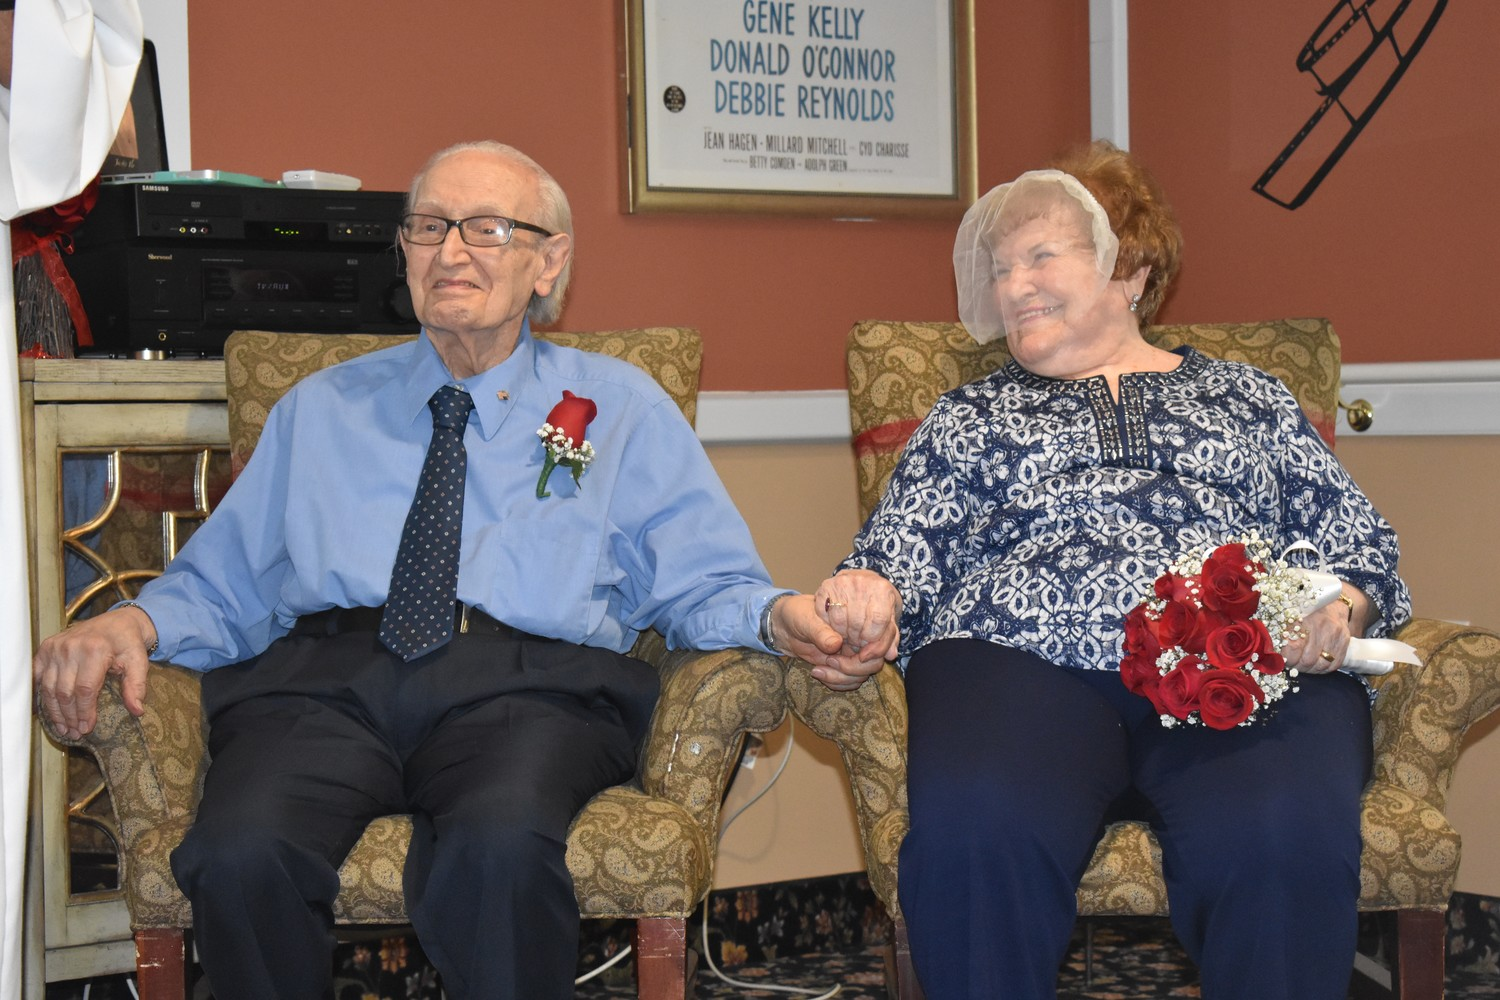 Joe and Florence Saitta listened to Msgr. Koenig before renewing their vows.